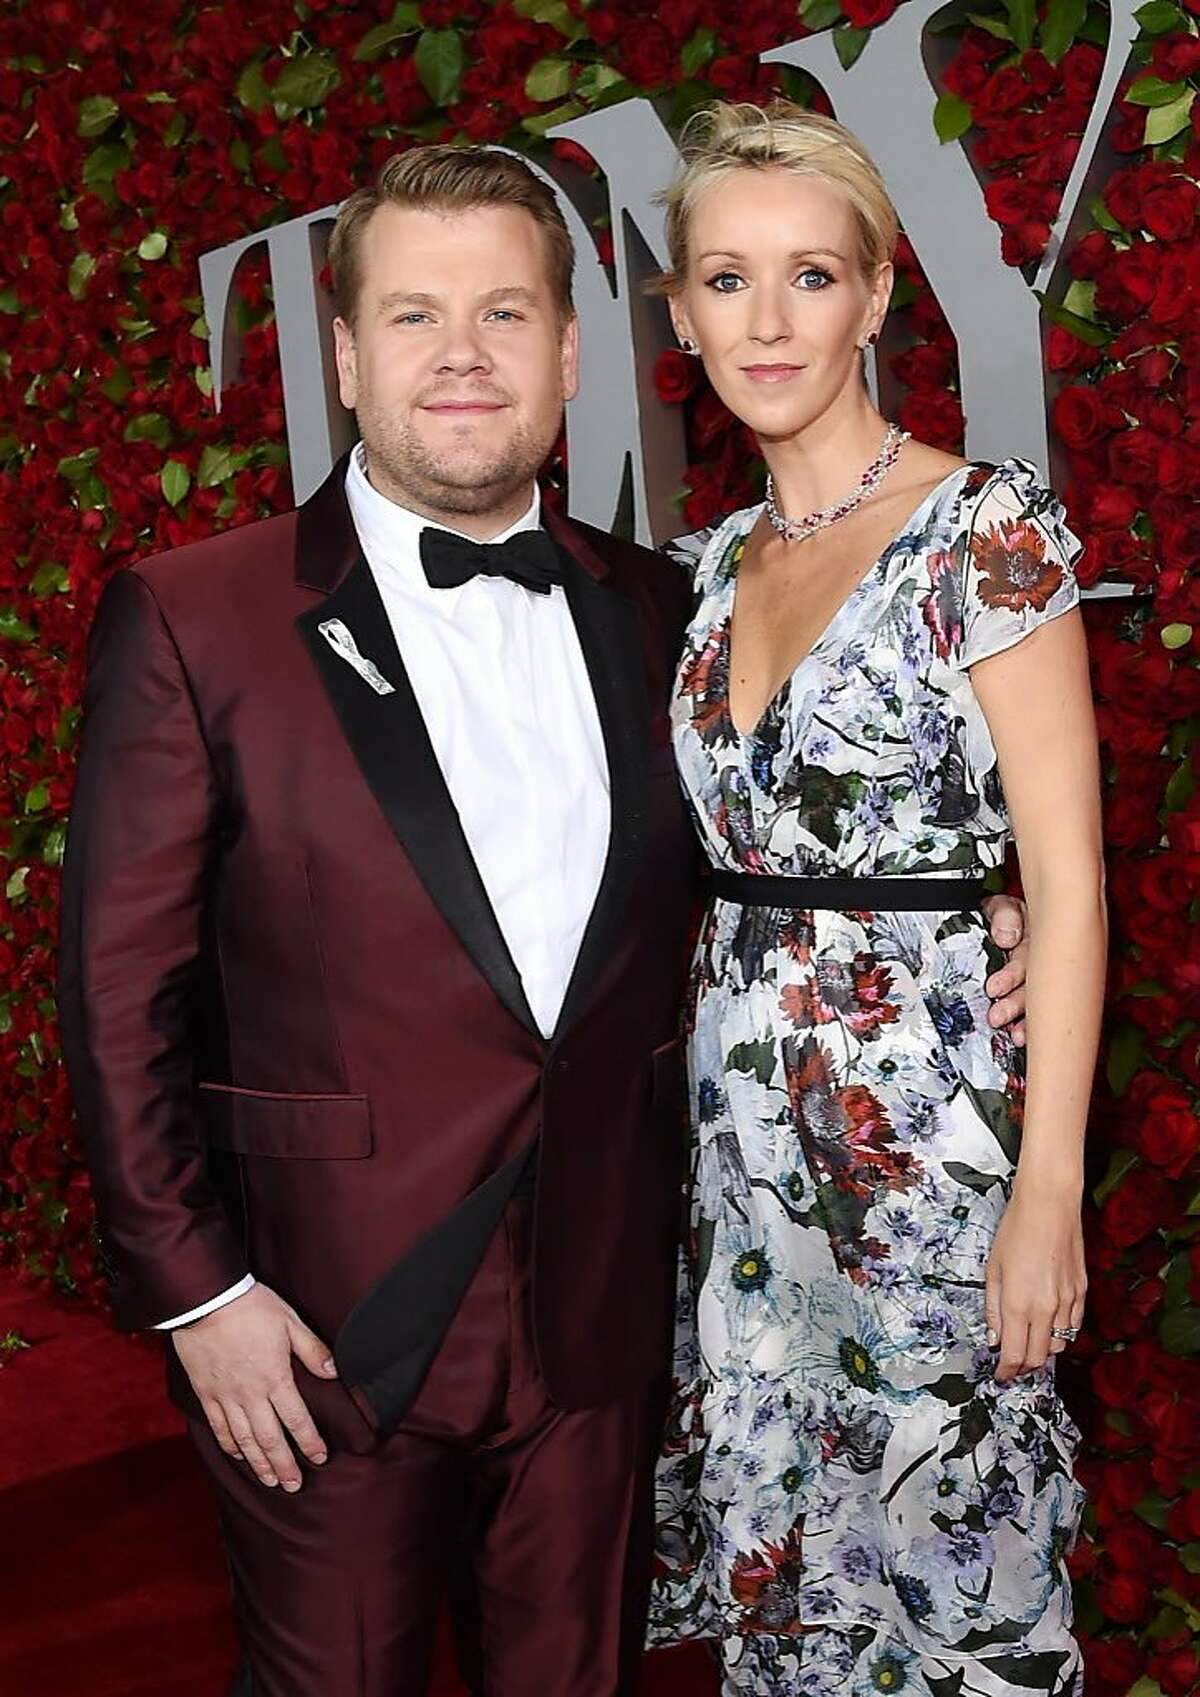 Host James Corden and Julia Carey attend the 70th Annual Tony Awards at The Beacon Theatre on June 12, 2016 in New York City.